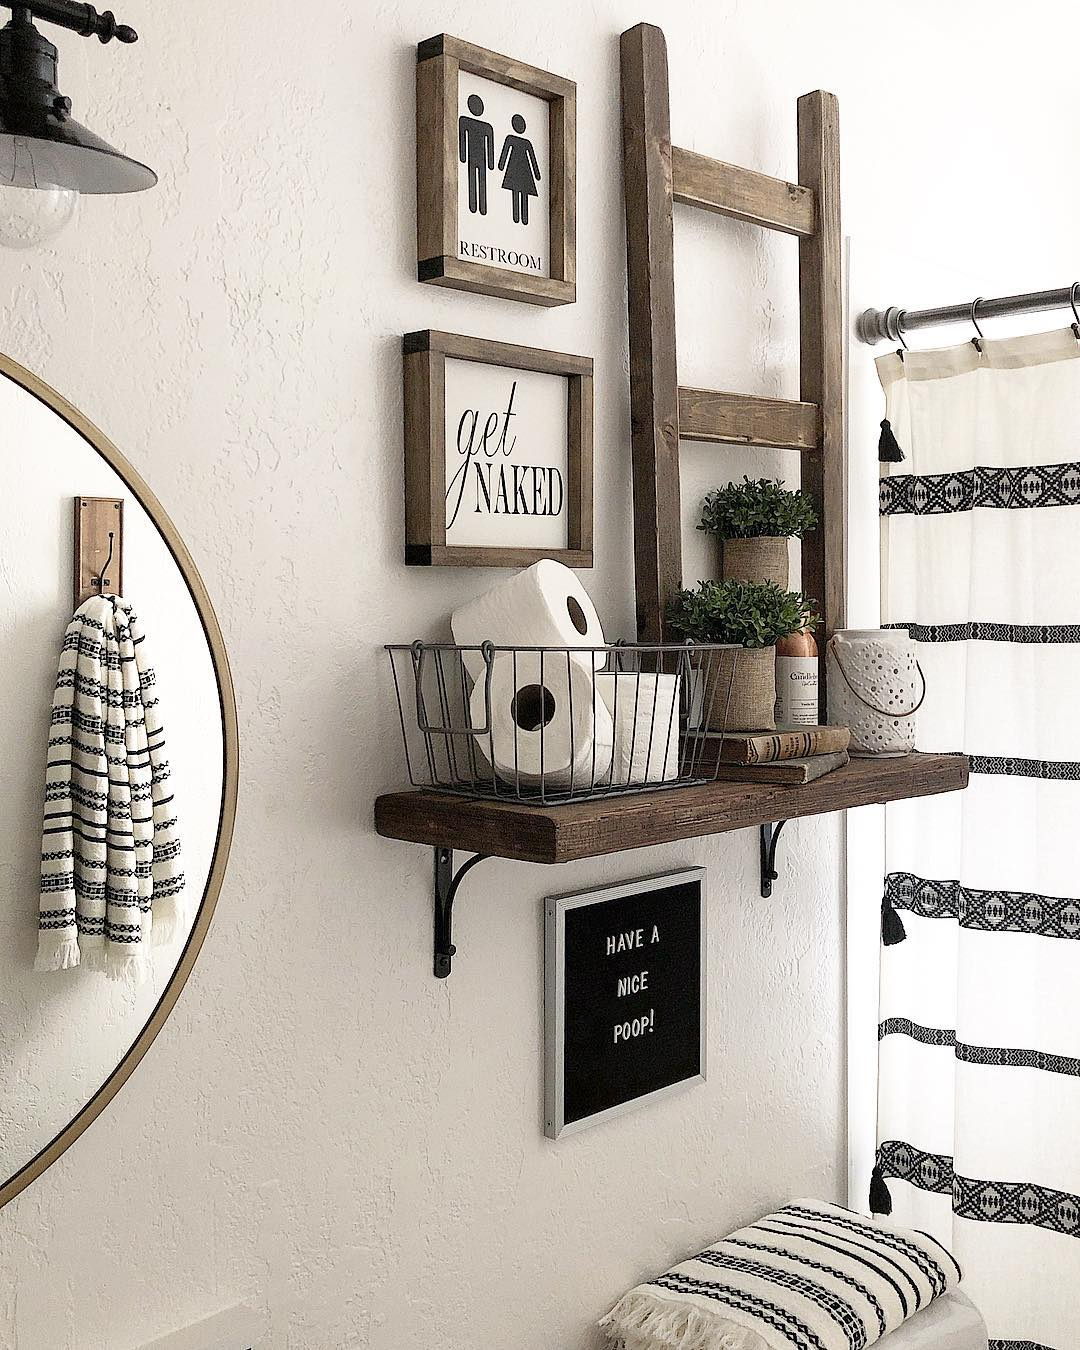 Bathroom Design with Reclaimed Wood Shelf and Picture Frames